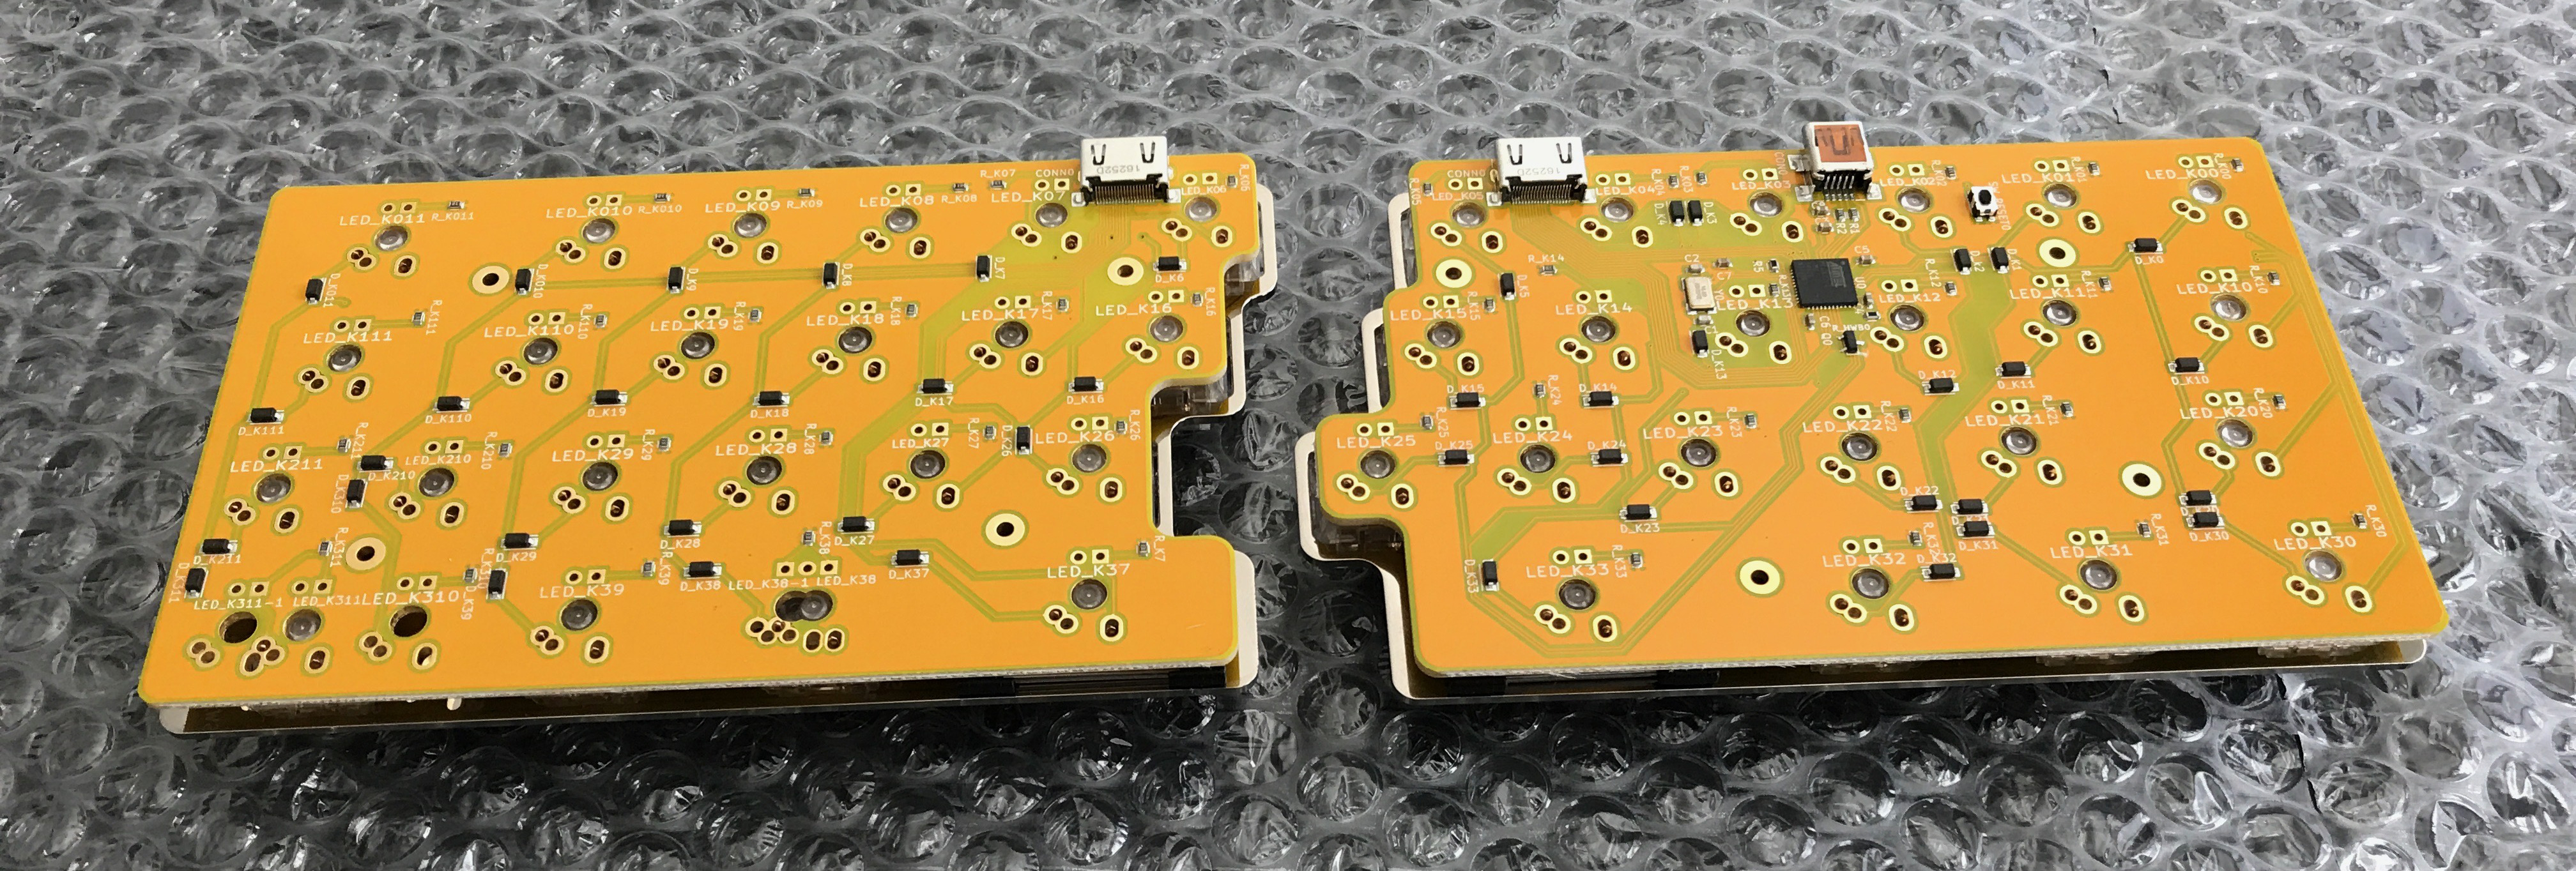 Underside of CaraVan PCBs mounted into the plates